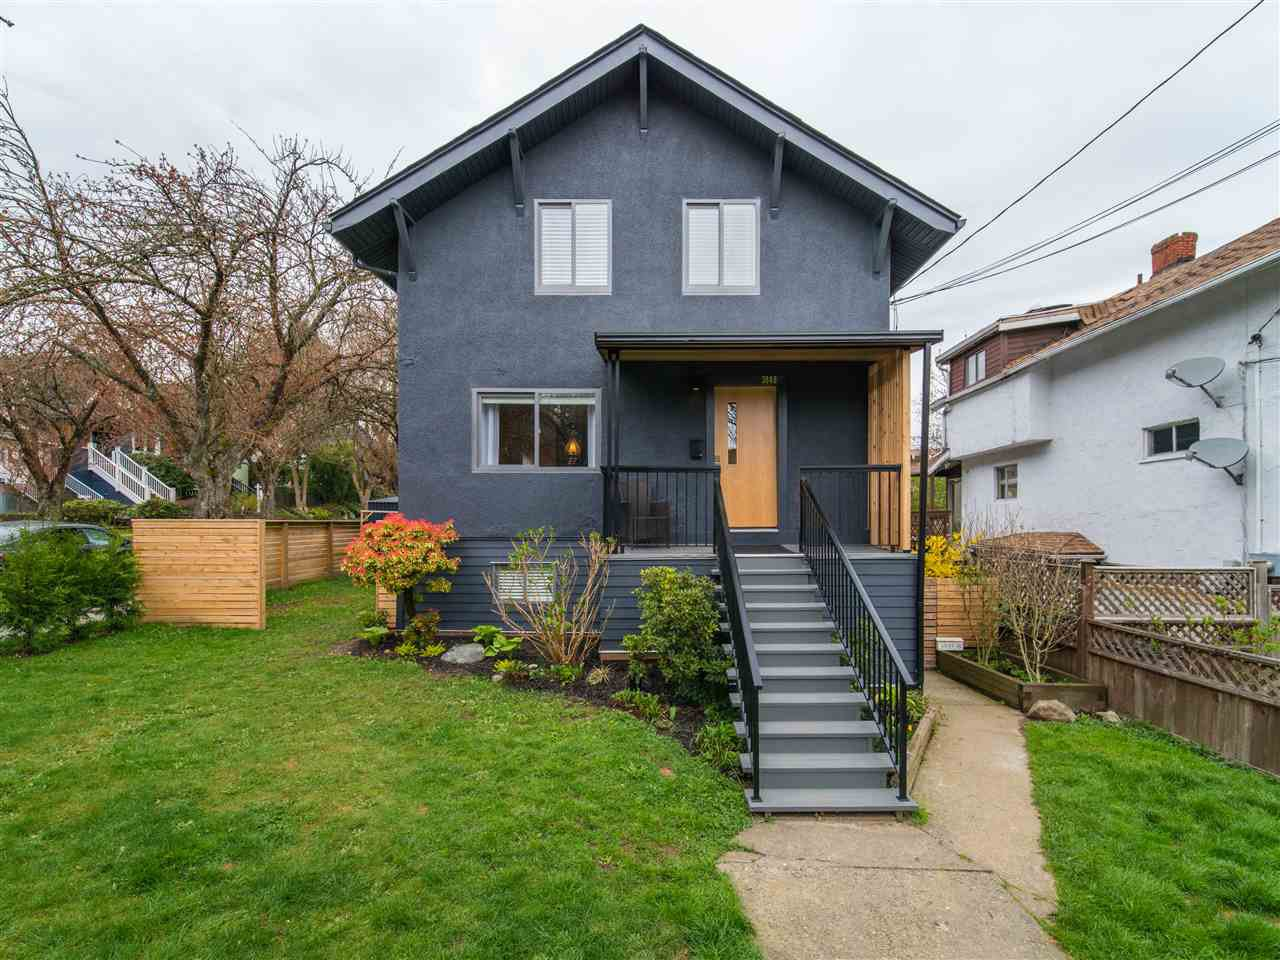 Main Photo: 3849 ST. CATHERINES STREET in Vancouver: Fraser VE House for sale (Vancouver East)  : MLS®# R2357334